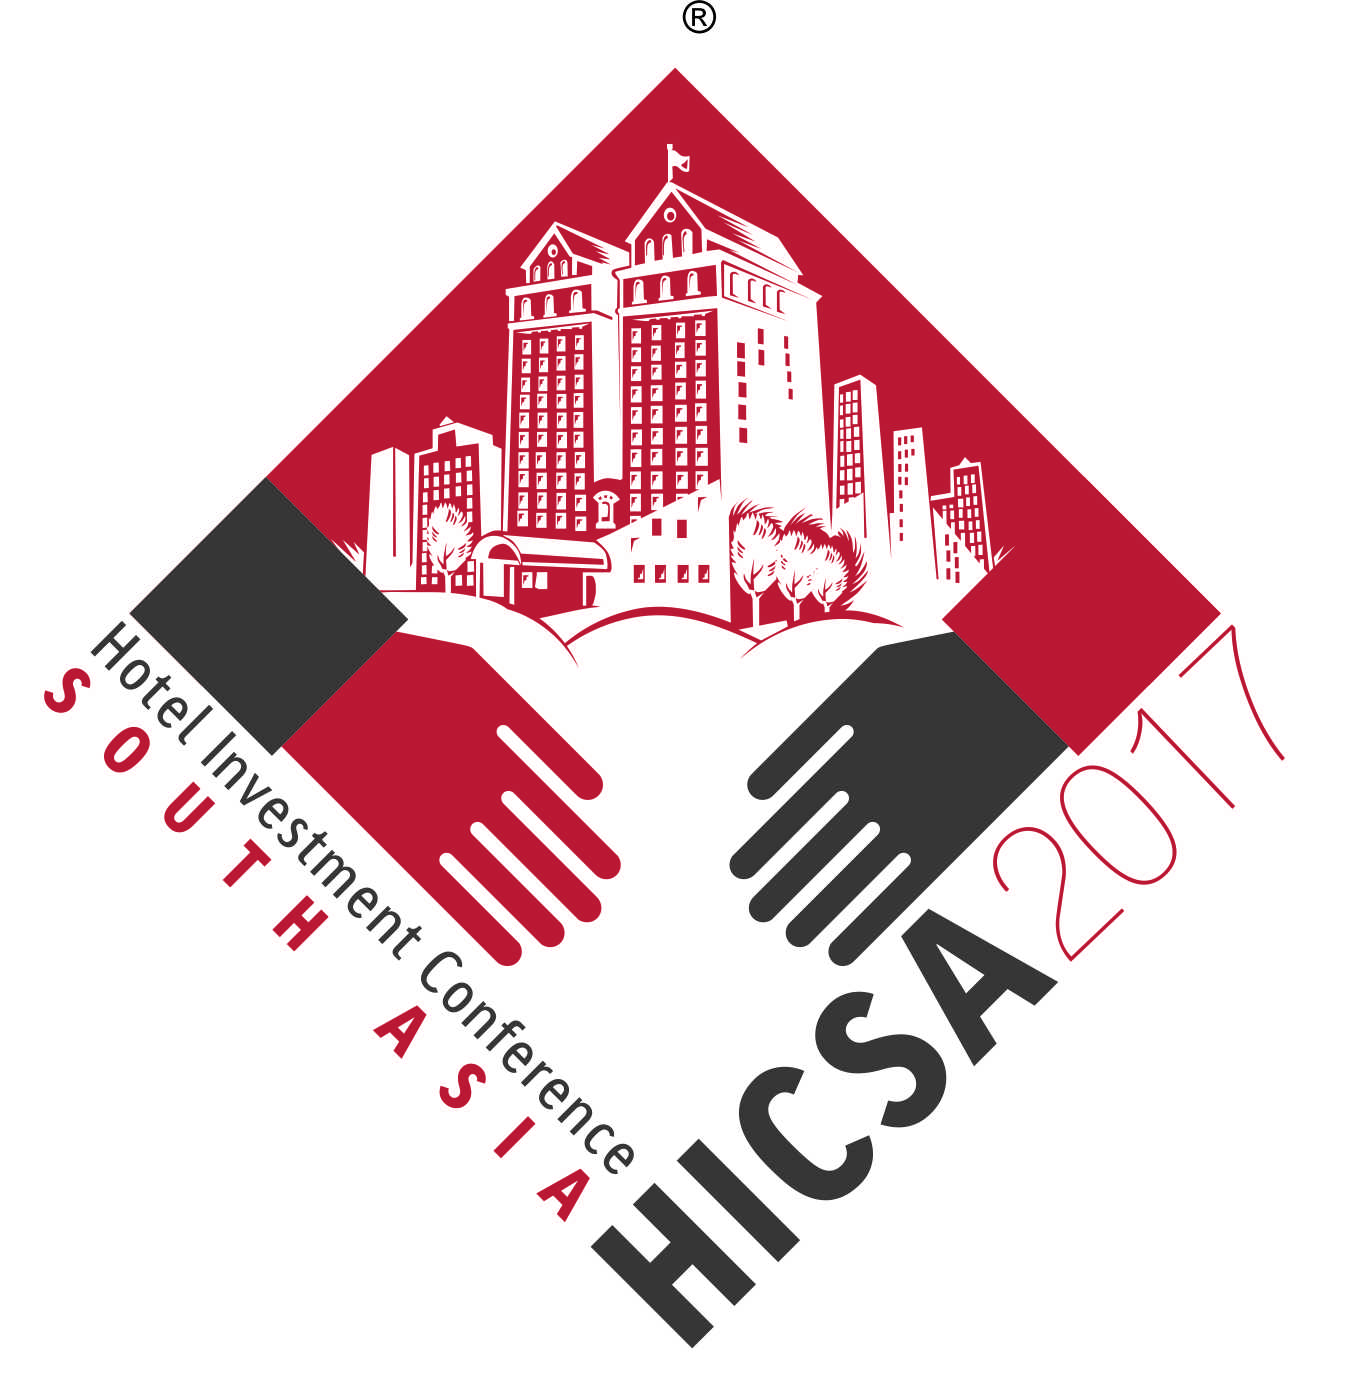 Hotel Investment Conference-South Asia (HICSA)